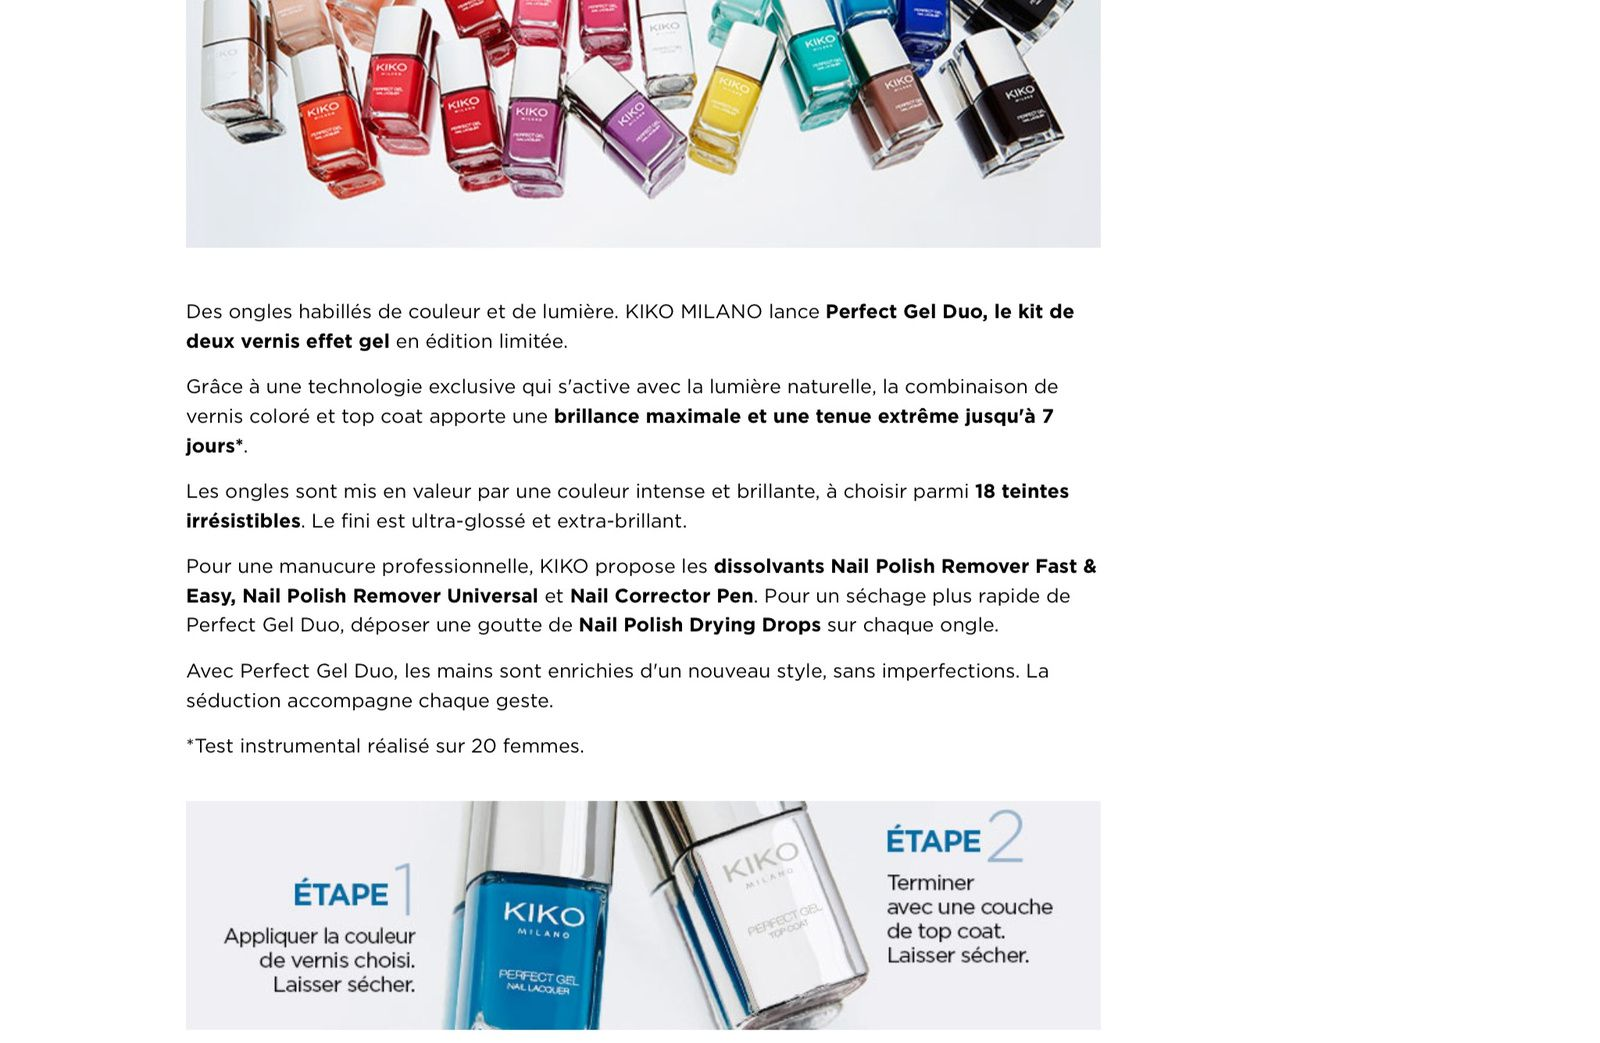 Perfect gel duo by Kiko : un vernis effet gel Top ou Flop?